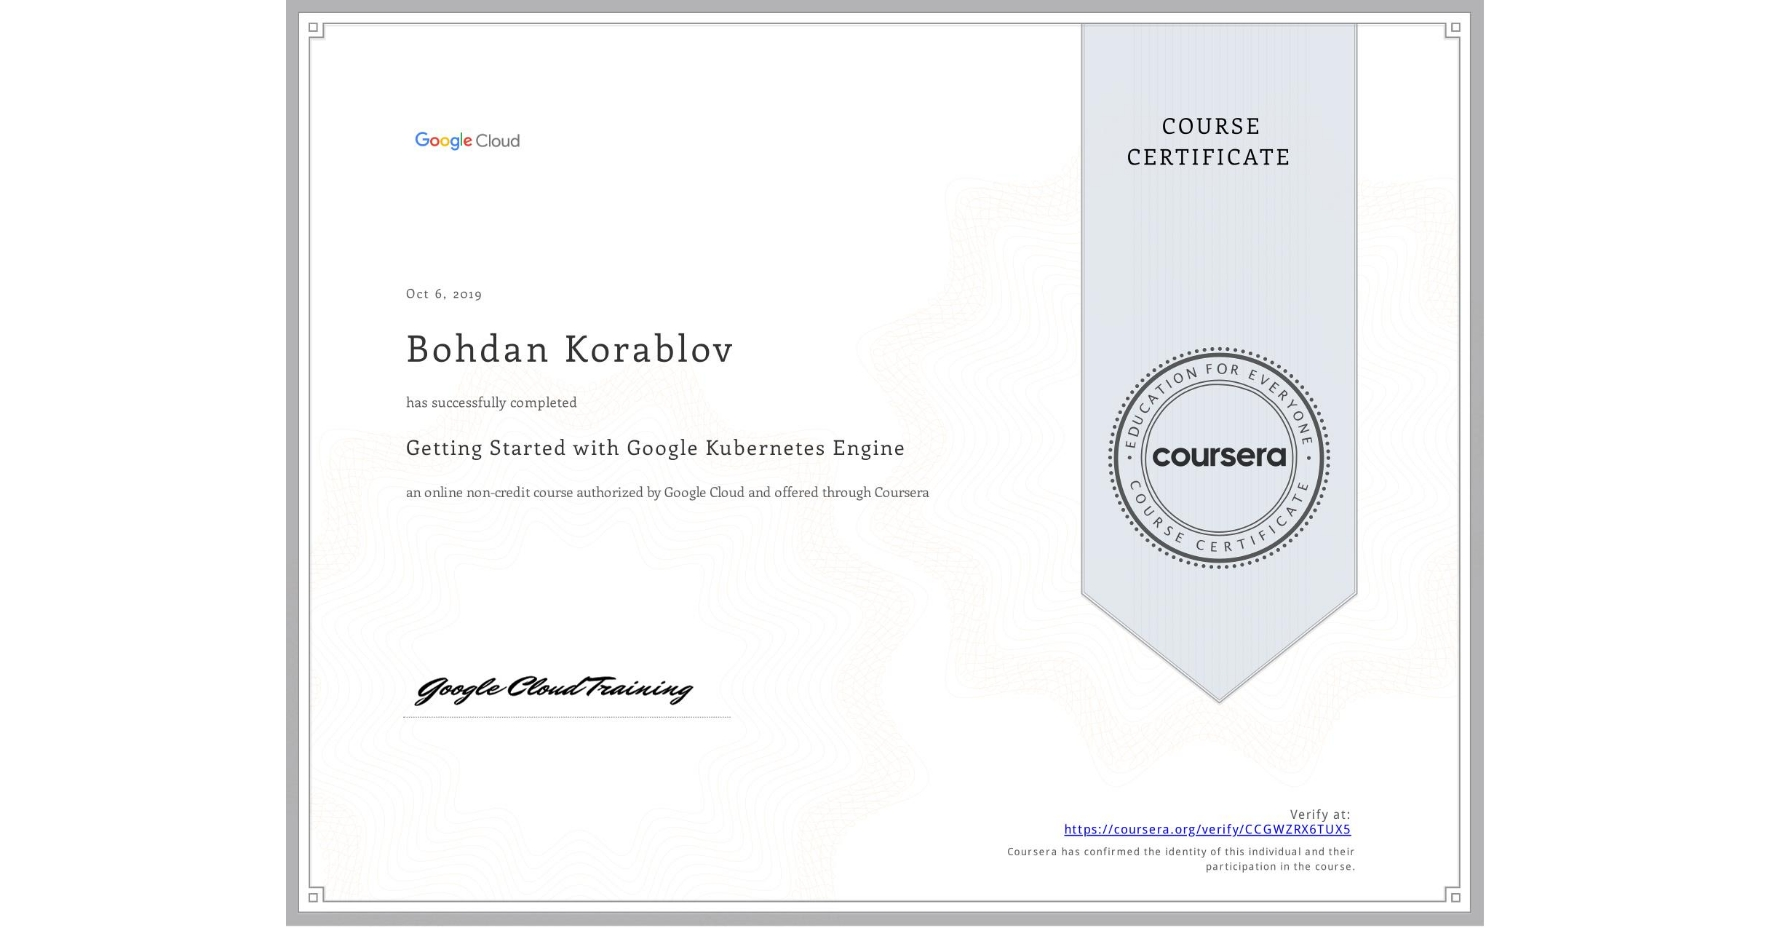 View certificate for Bohdan Korablov, Getting Started with Google Kubernetes Engine, an online non-credit course authorized by Google Cloud and offered through Coursera